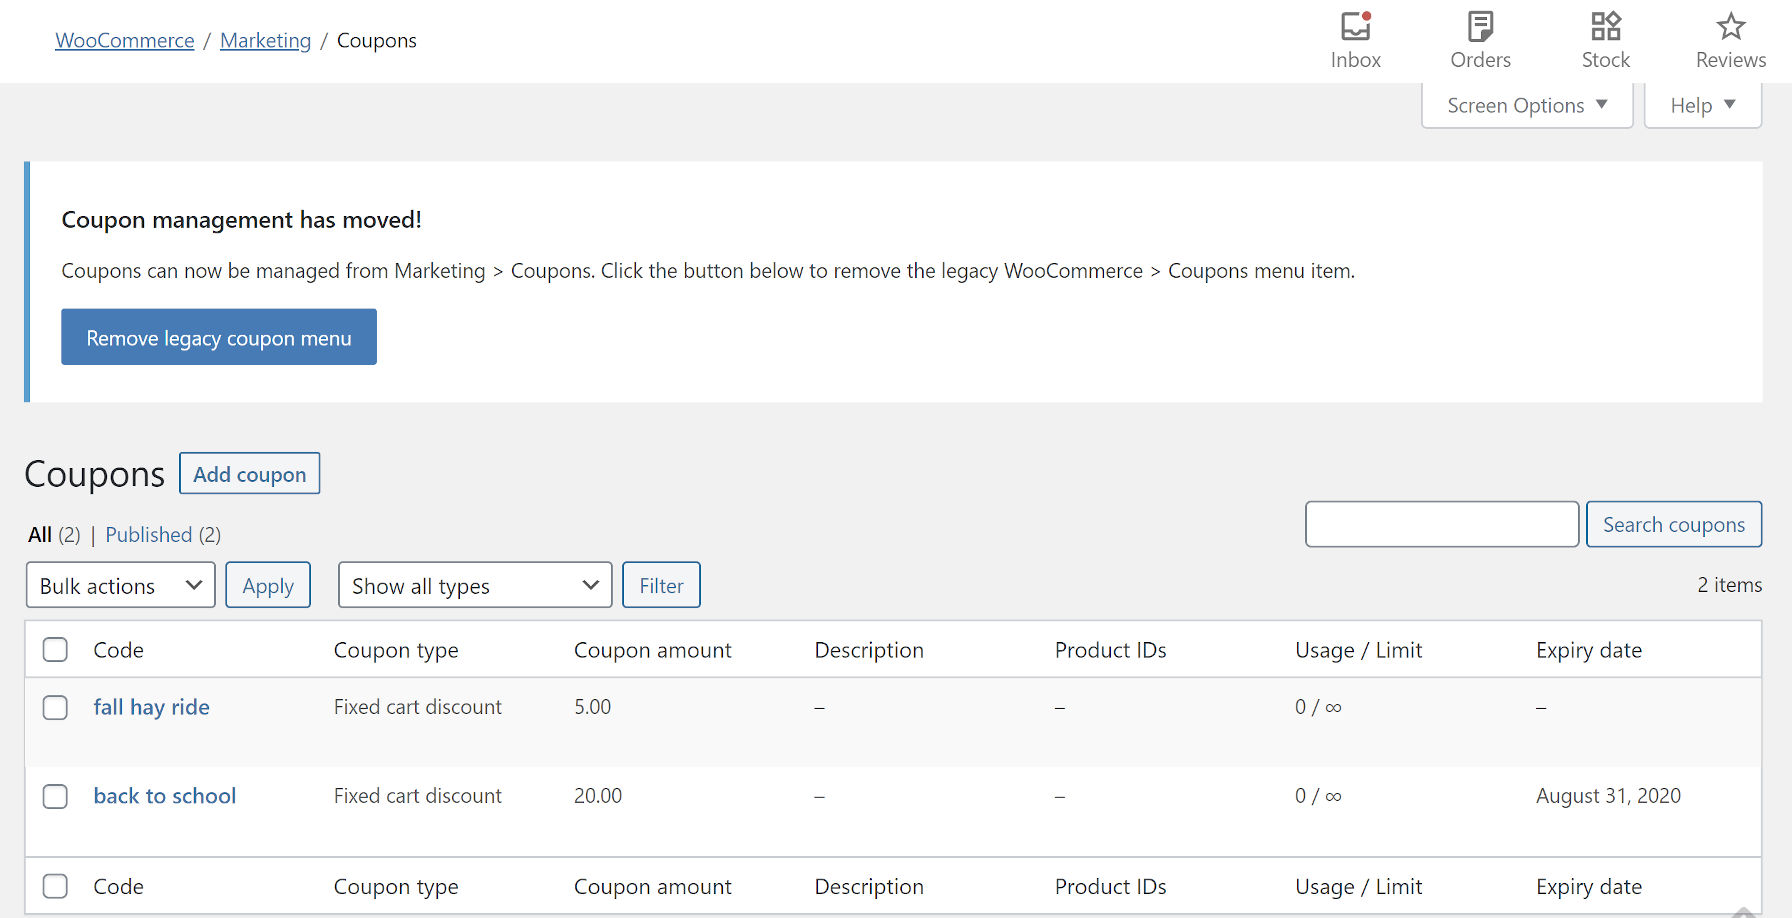 WooCommerce coupon management screen.